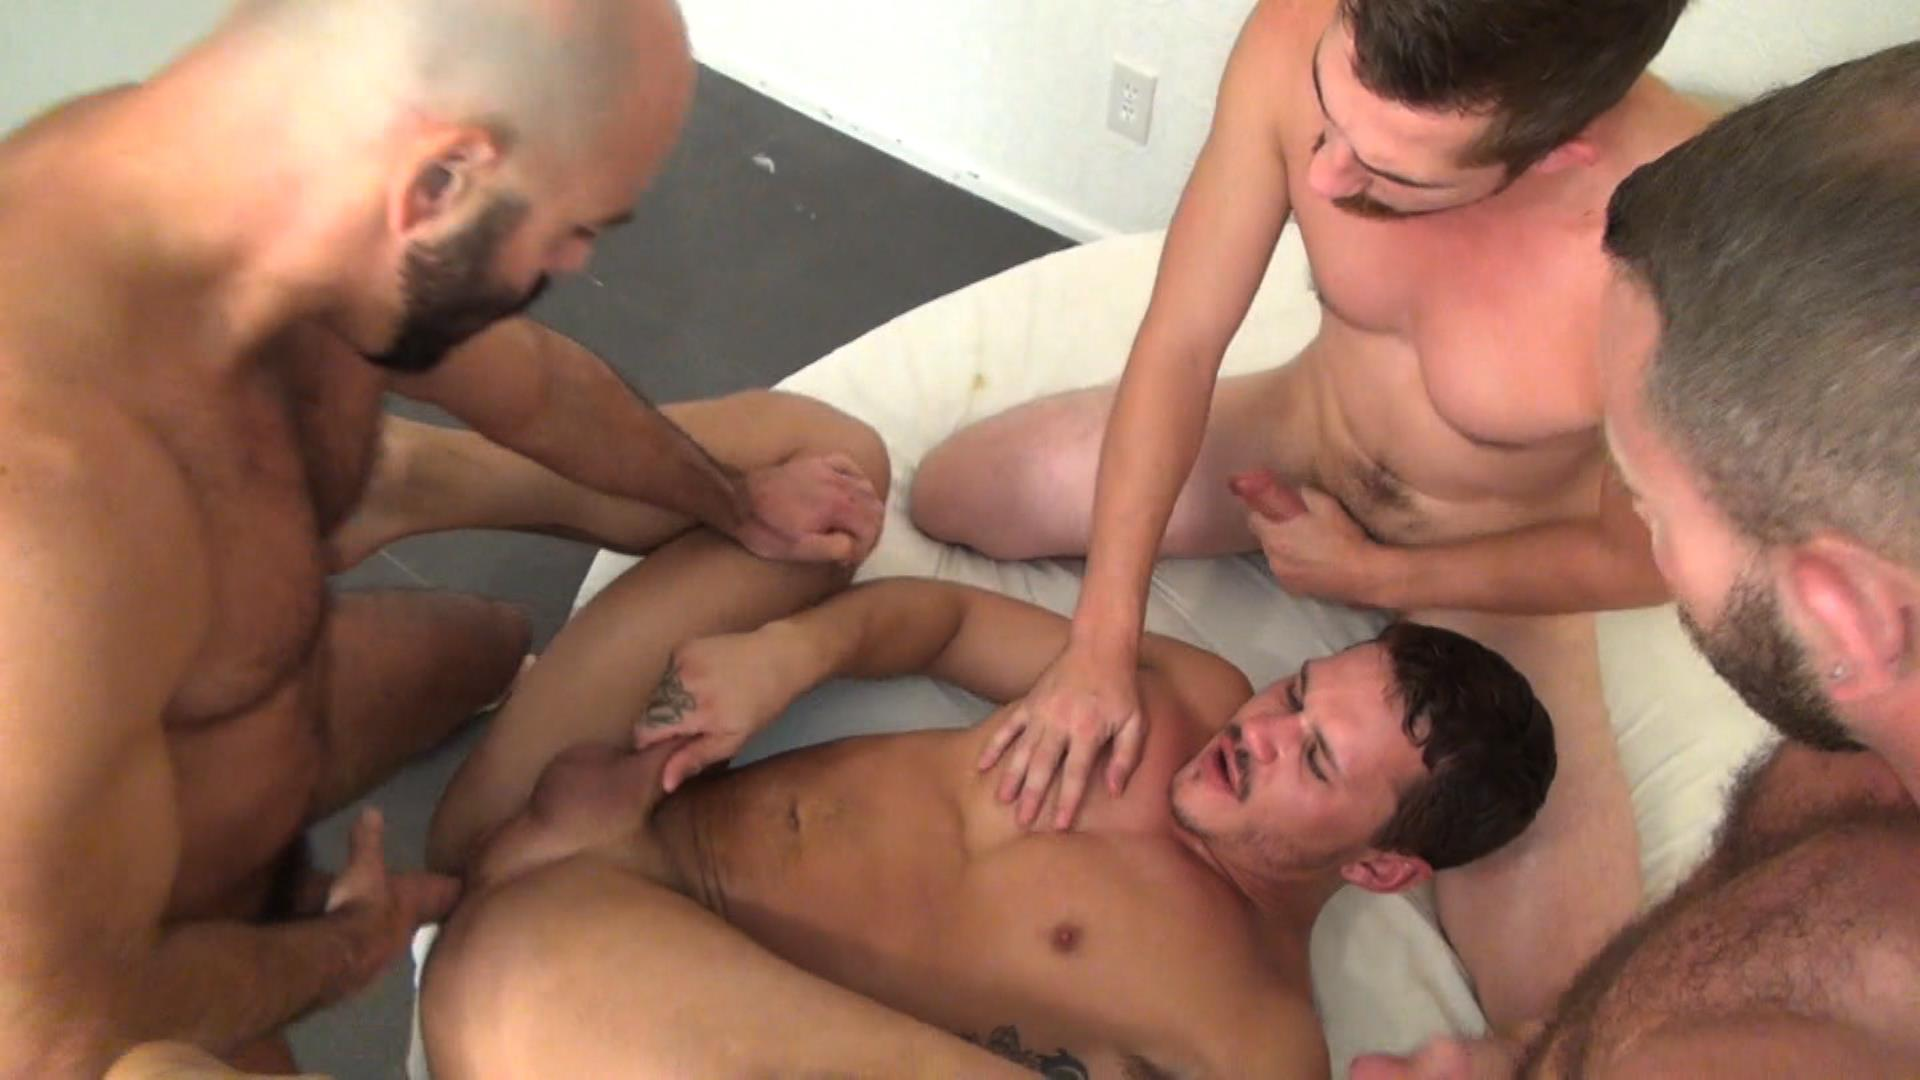 Raw-Fuck-Club-Dayton-OConnor-Tate-Ryder-Shay-Michaels-Adam-Russo-Bareback-Breeding-Amateur-Gay-Porn-6 Tate Ryder Gets Three Hairy Muscle Daddy Bareback Cocks